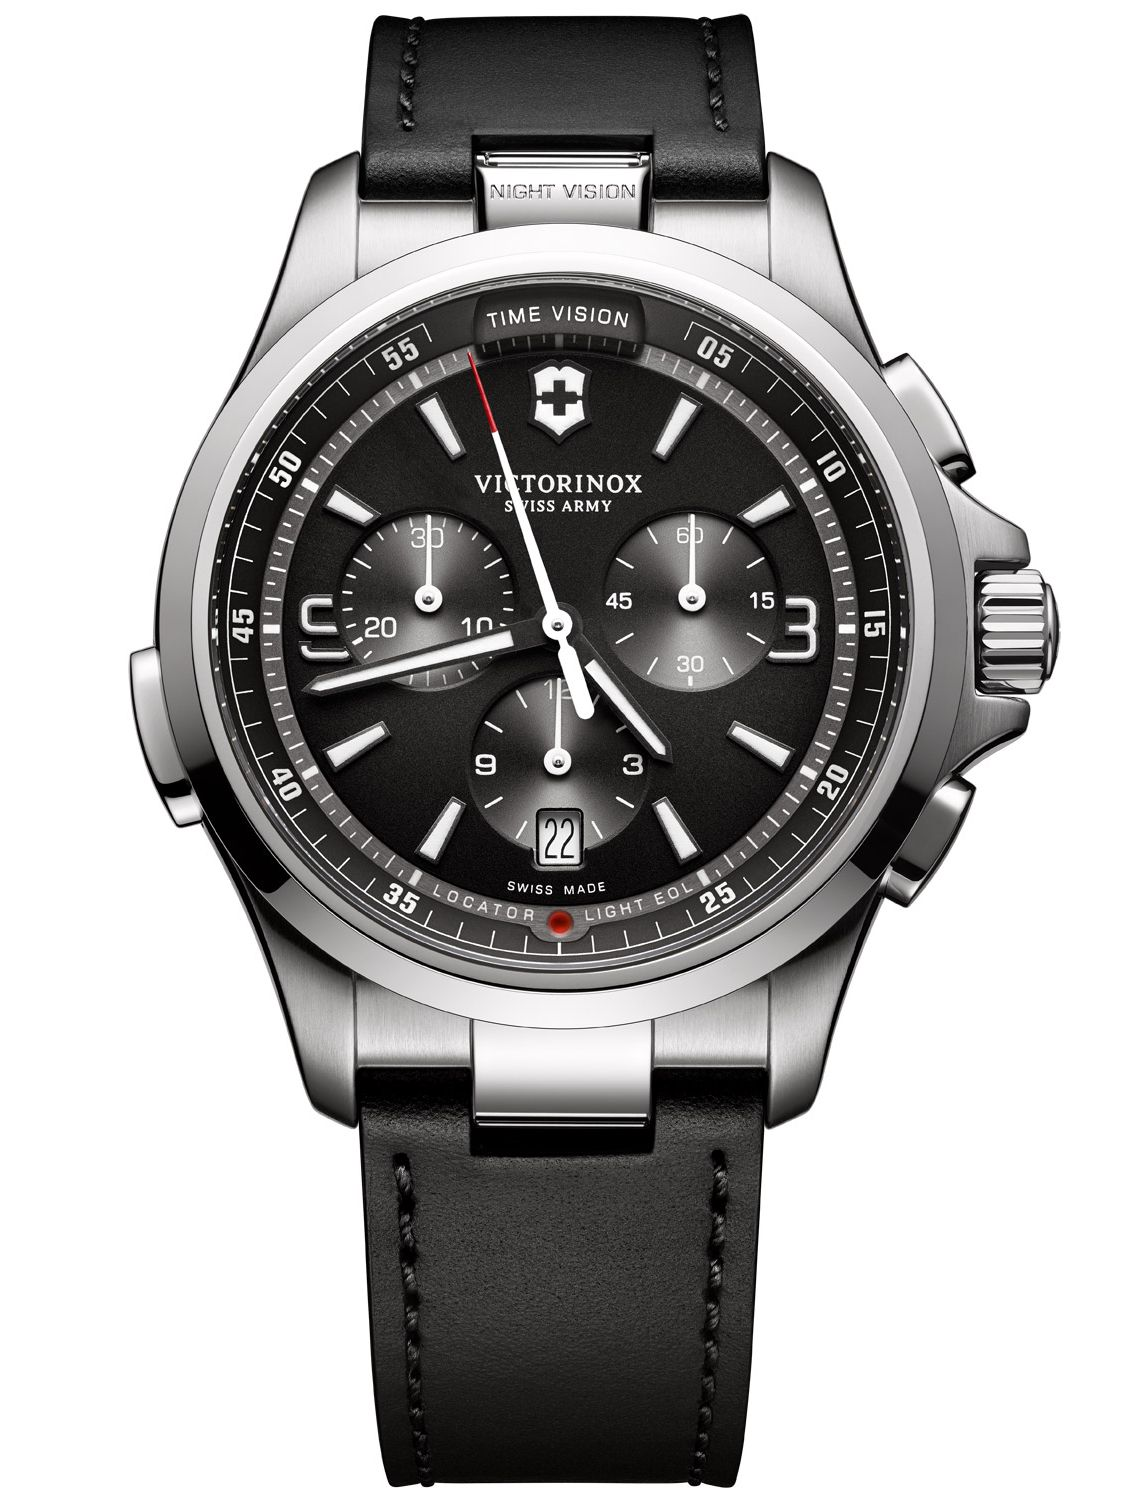 Victorinox 241785 Night Vision Chronograph Herr...